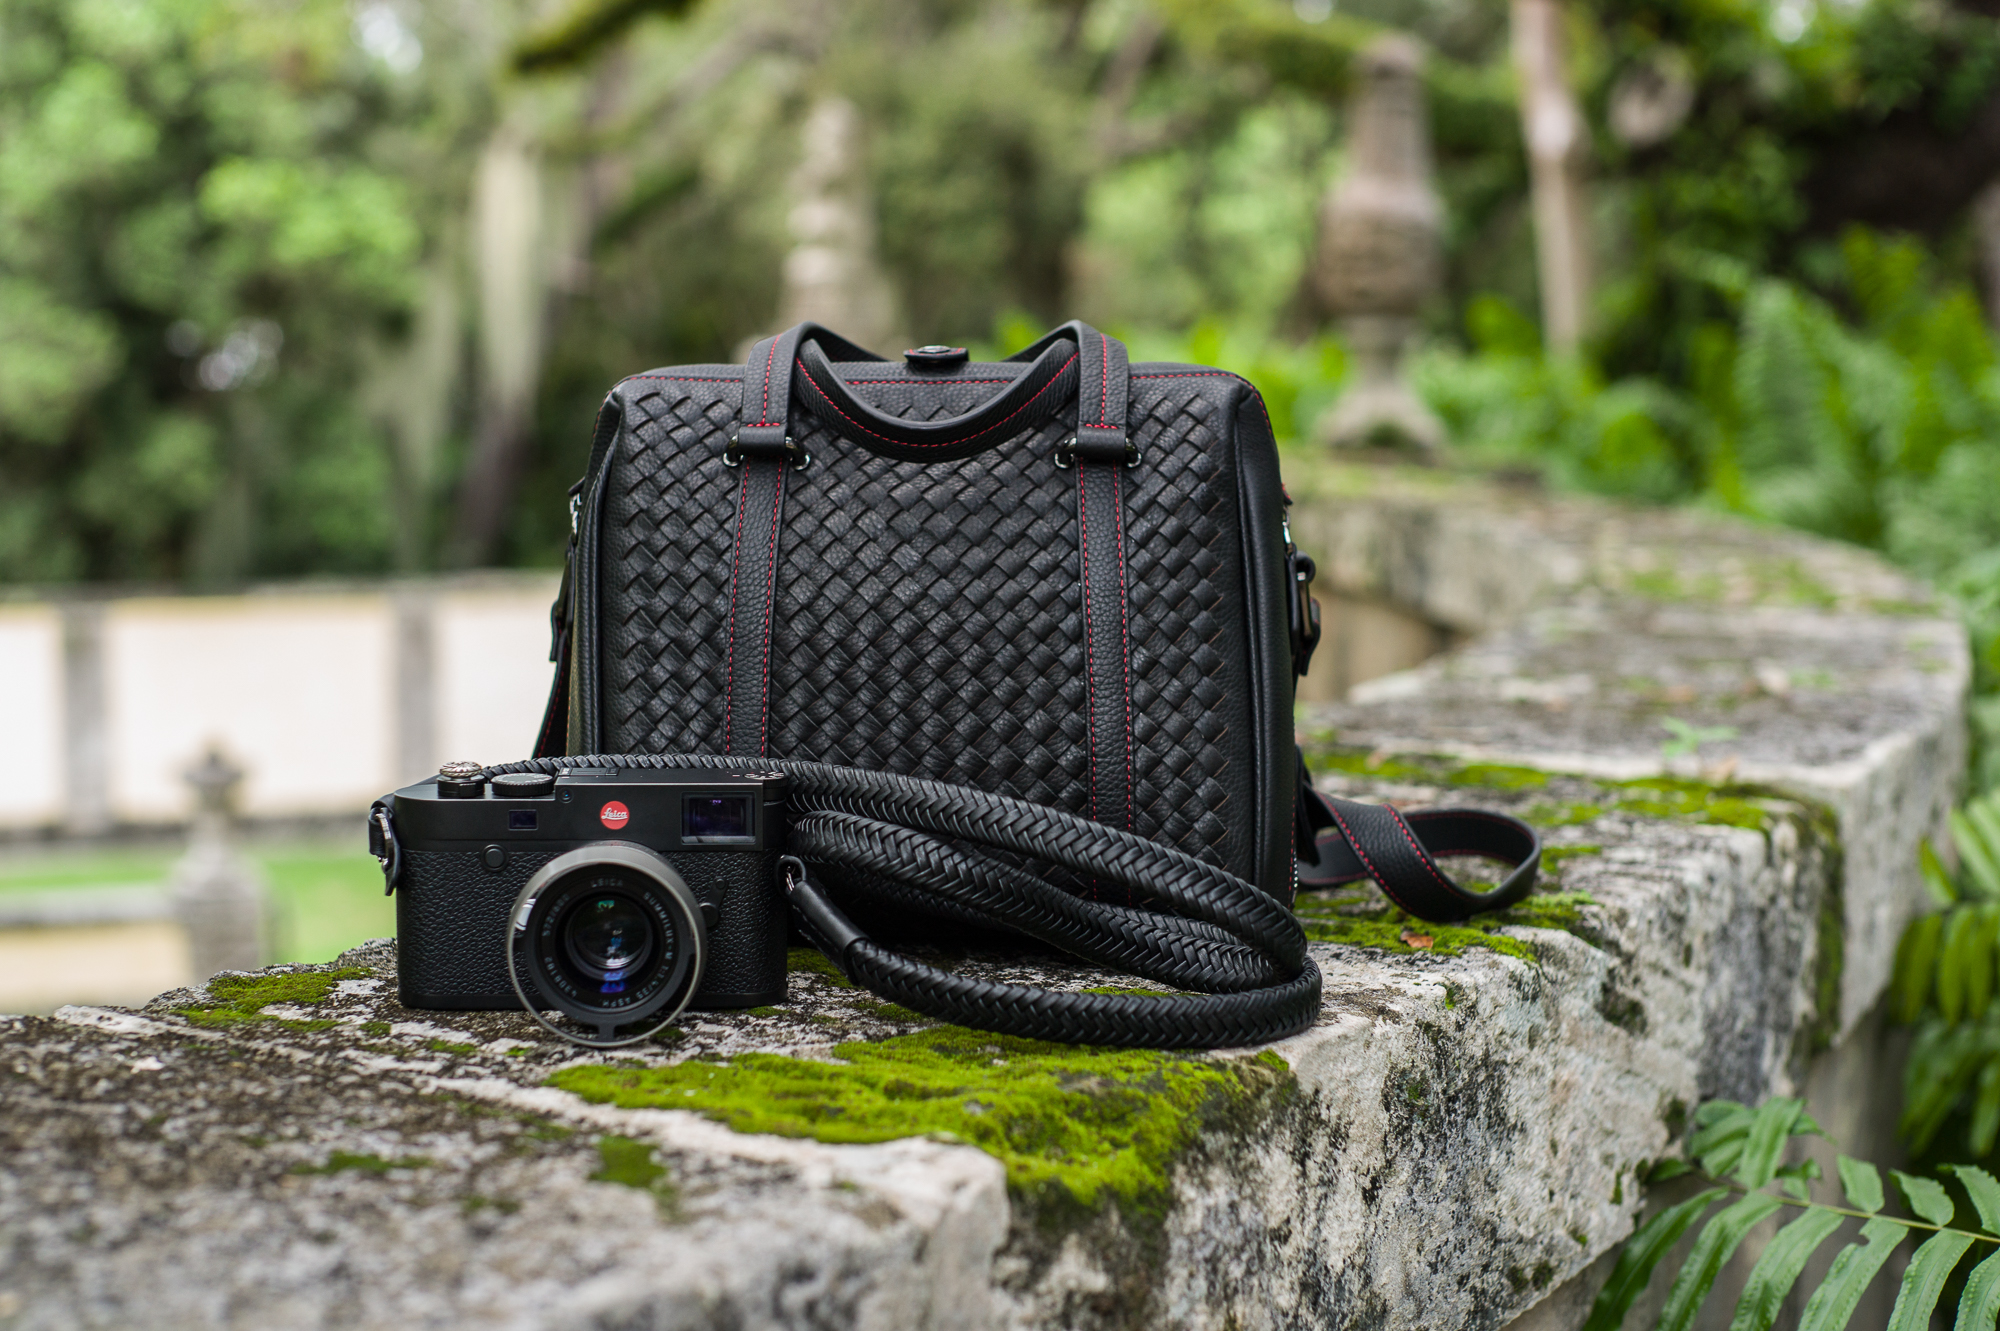 Vi Vante calibre bag Matador Noir braided leather 4 camera strap leica m10 summilux.jpg